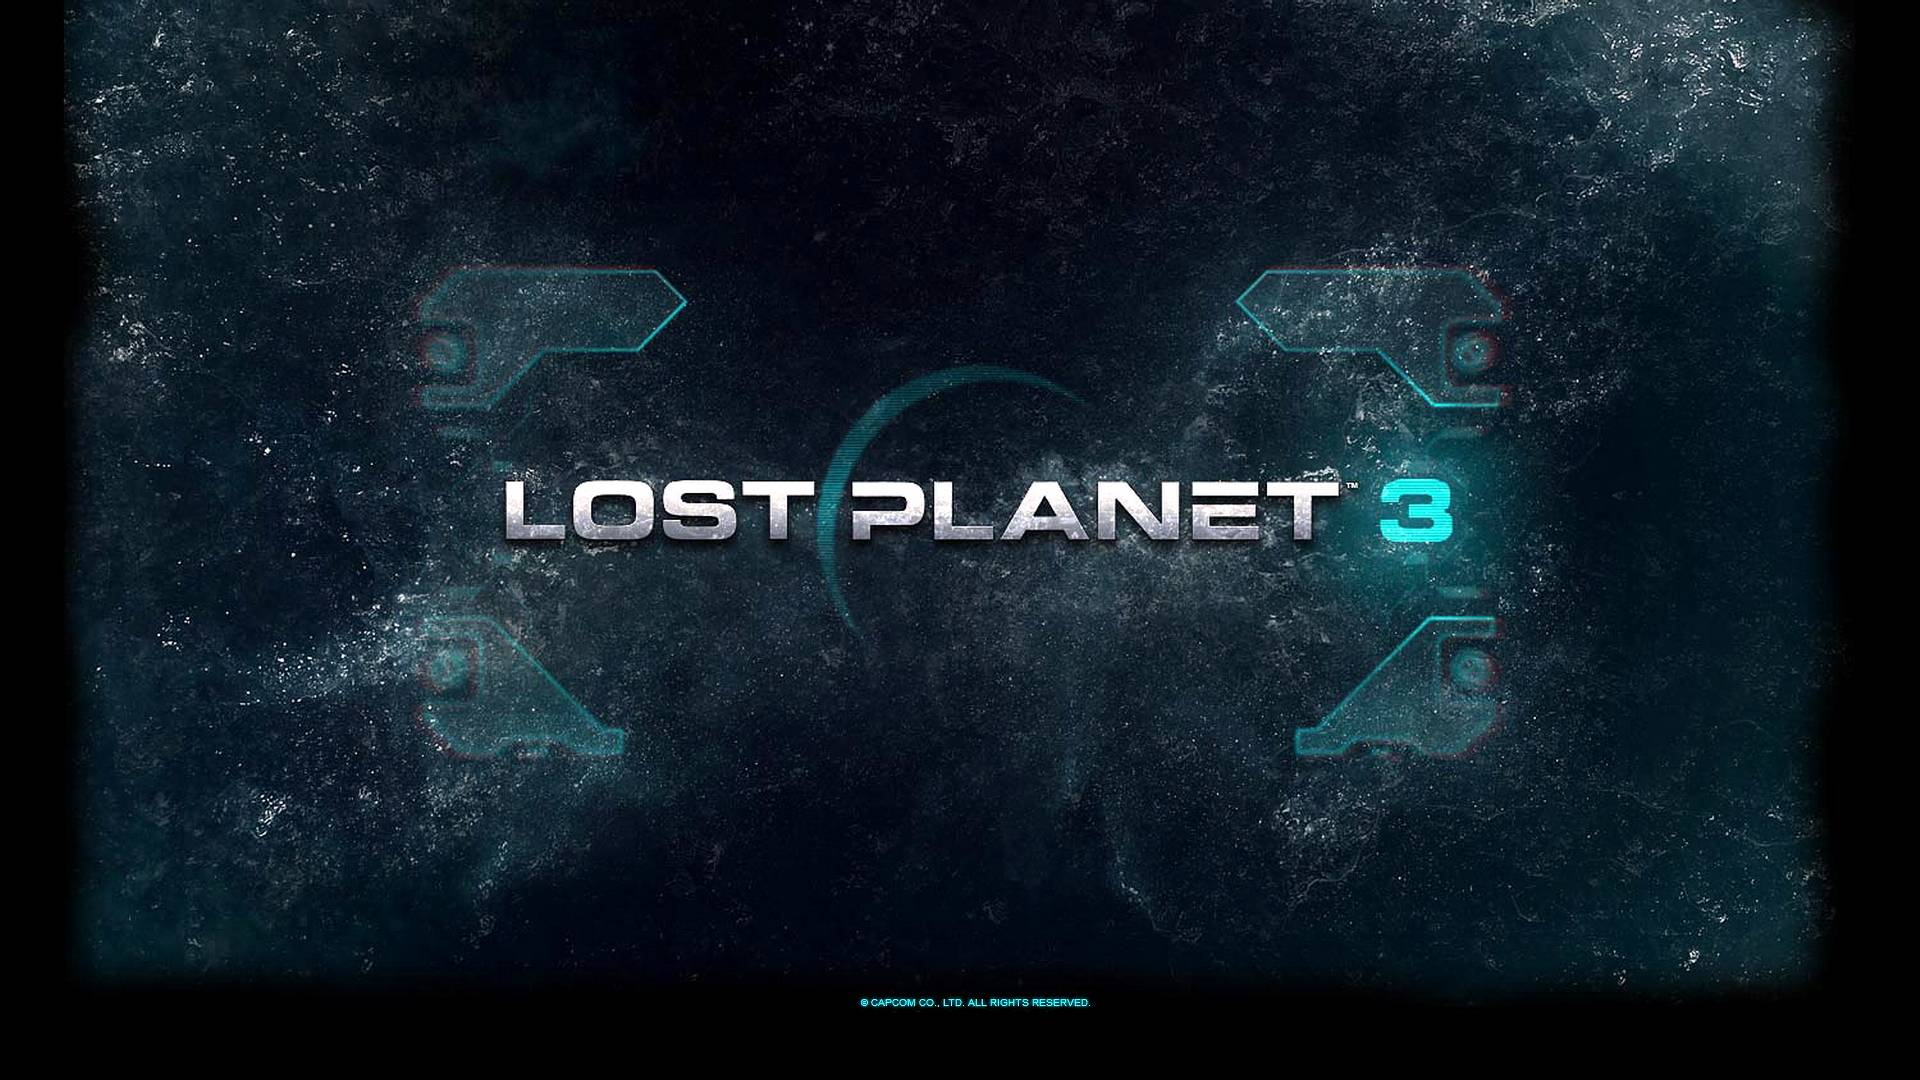 Lost Planet 3 wallpaper 4